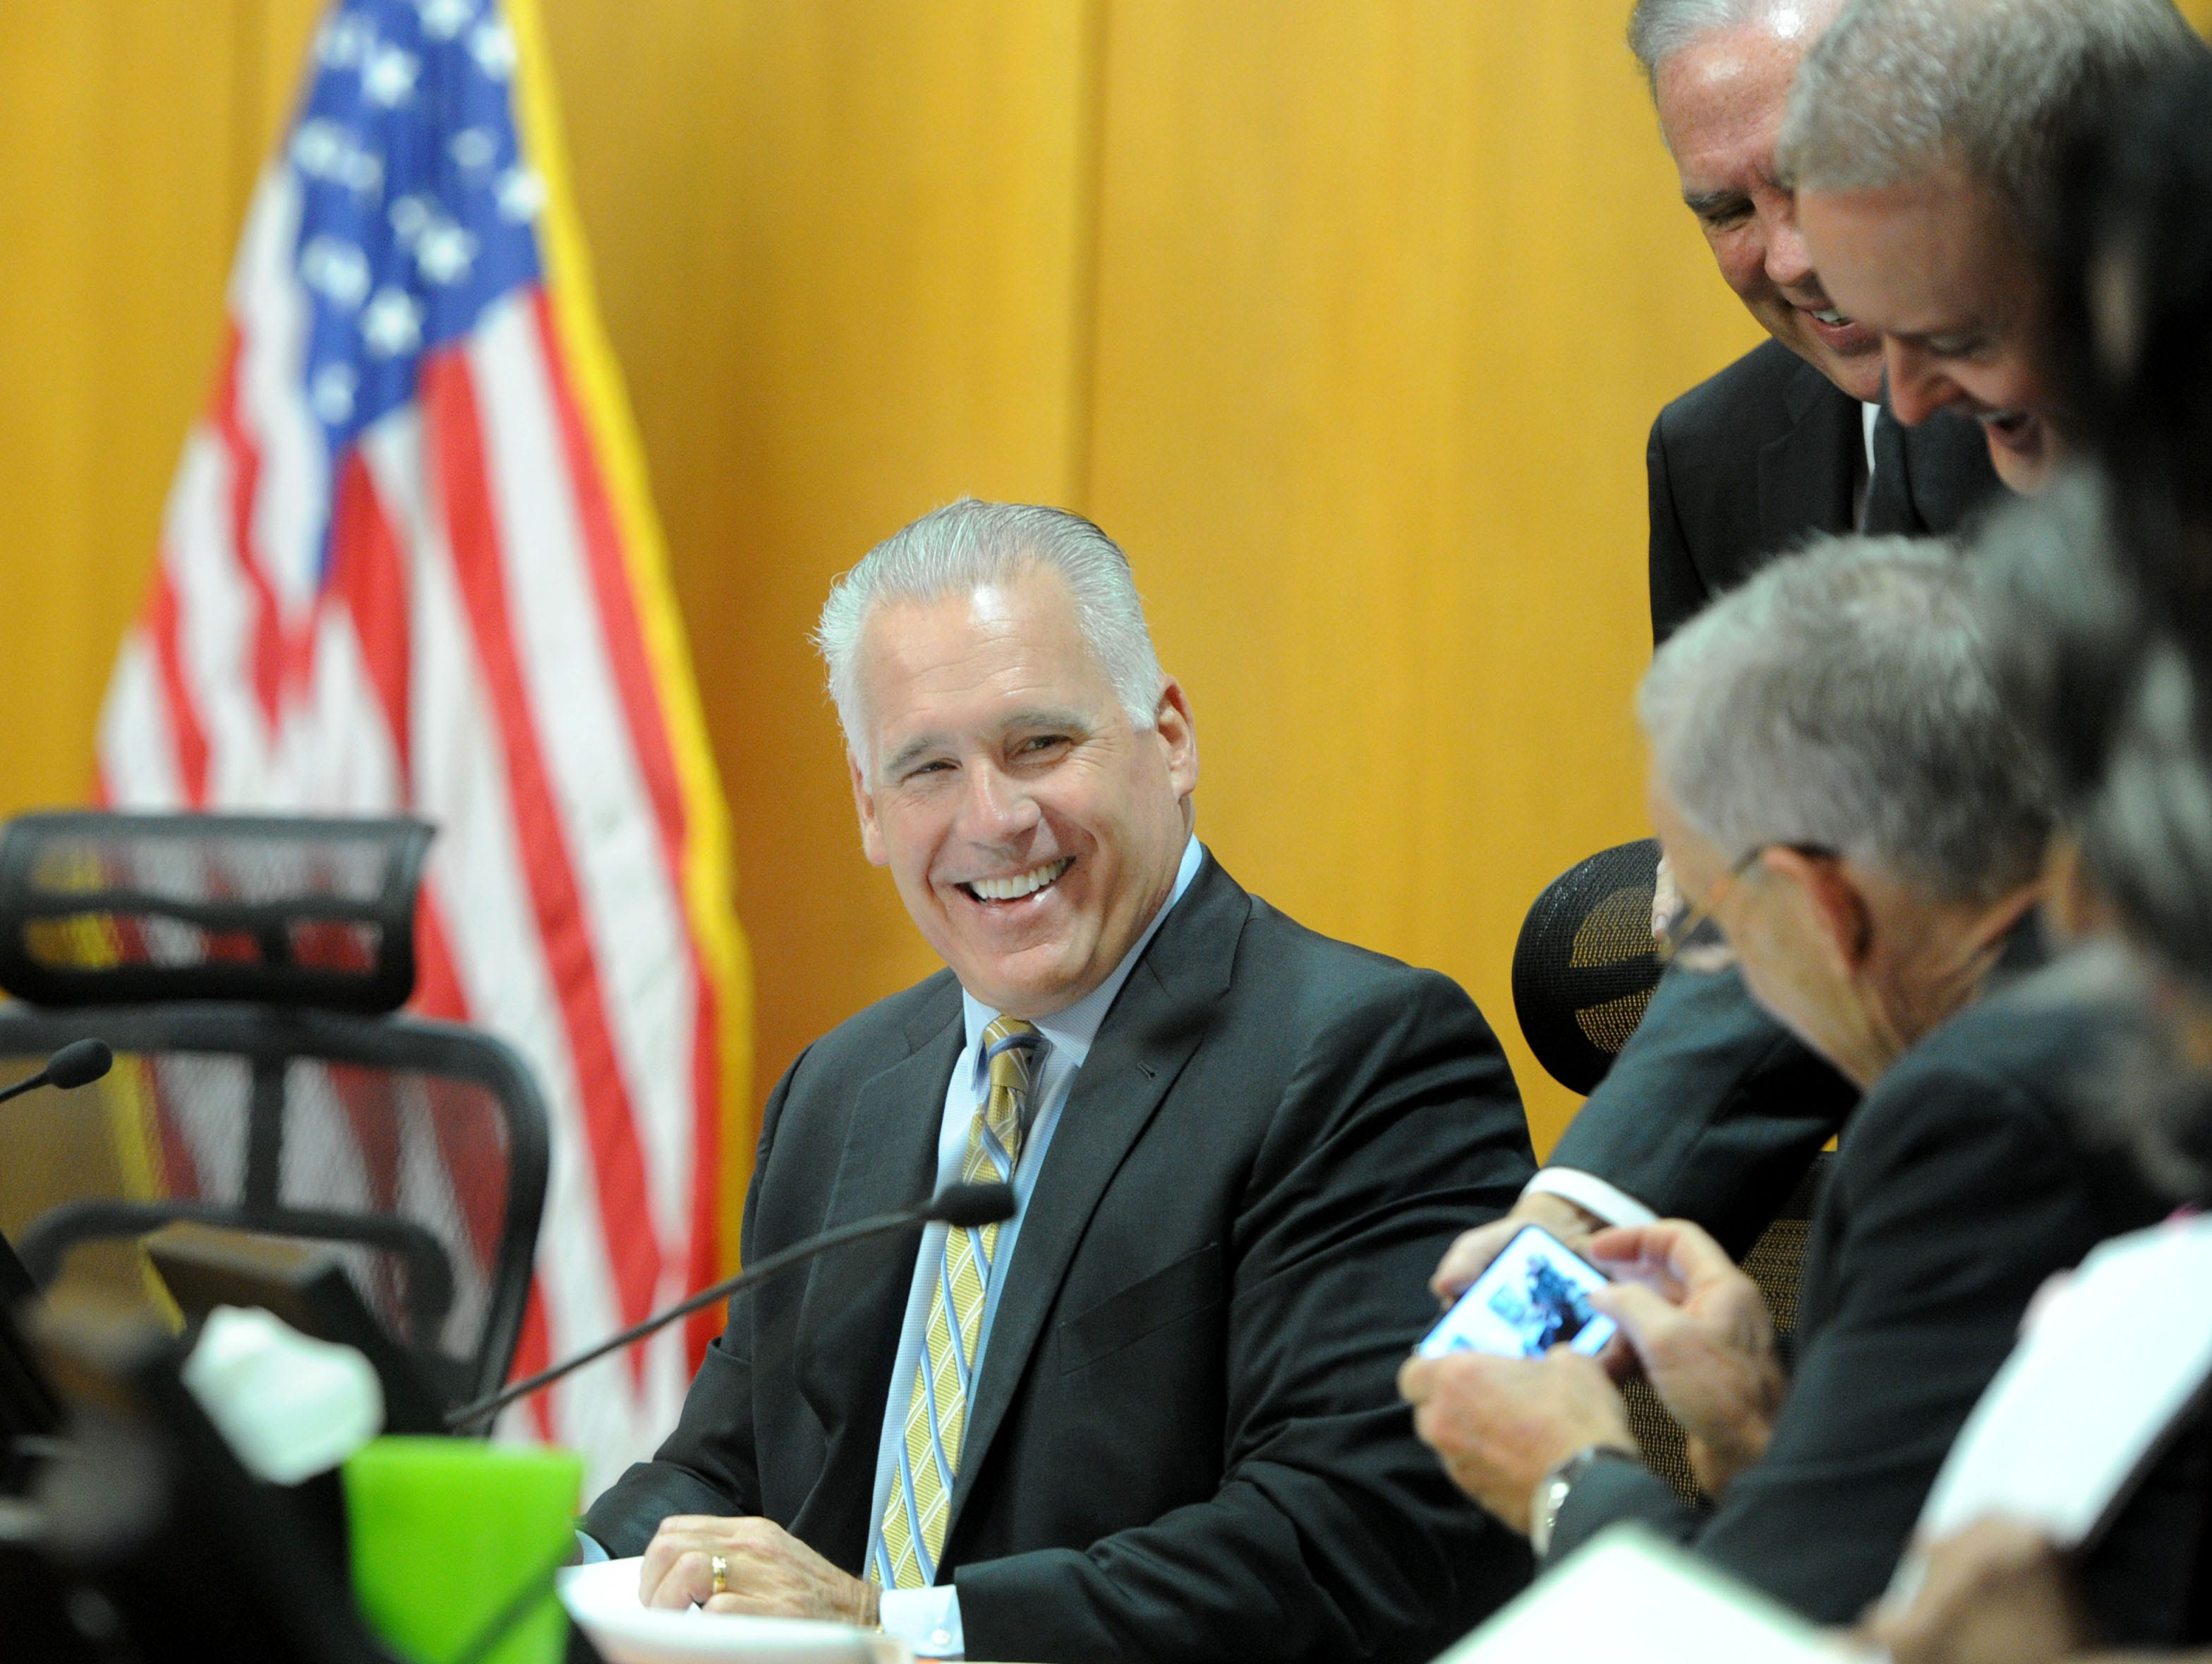 Supervisor Peter Foywatches as County Executive Officer Mike Powers shares a photo at the last meeting during Foy's tenure on the Board of Supervisors.